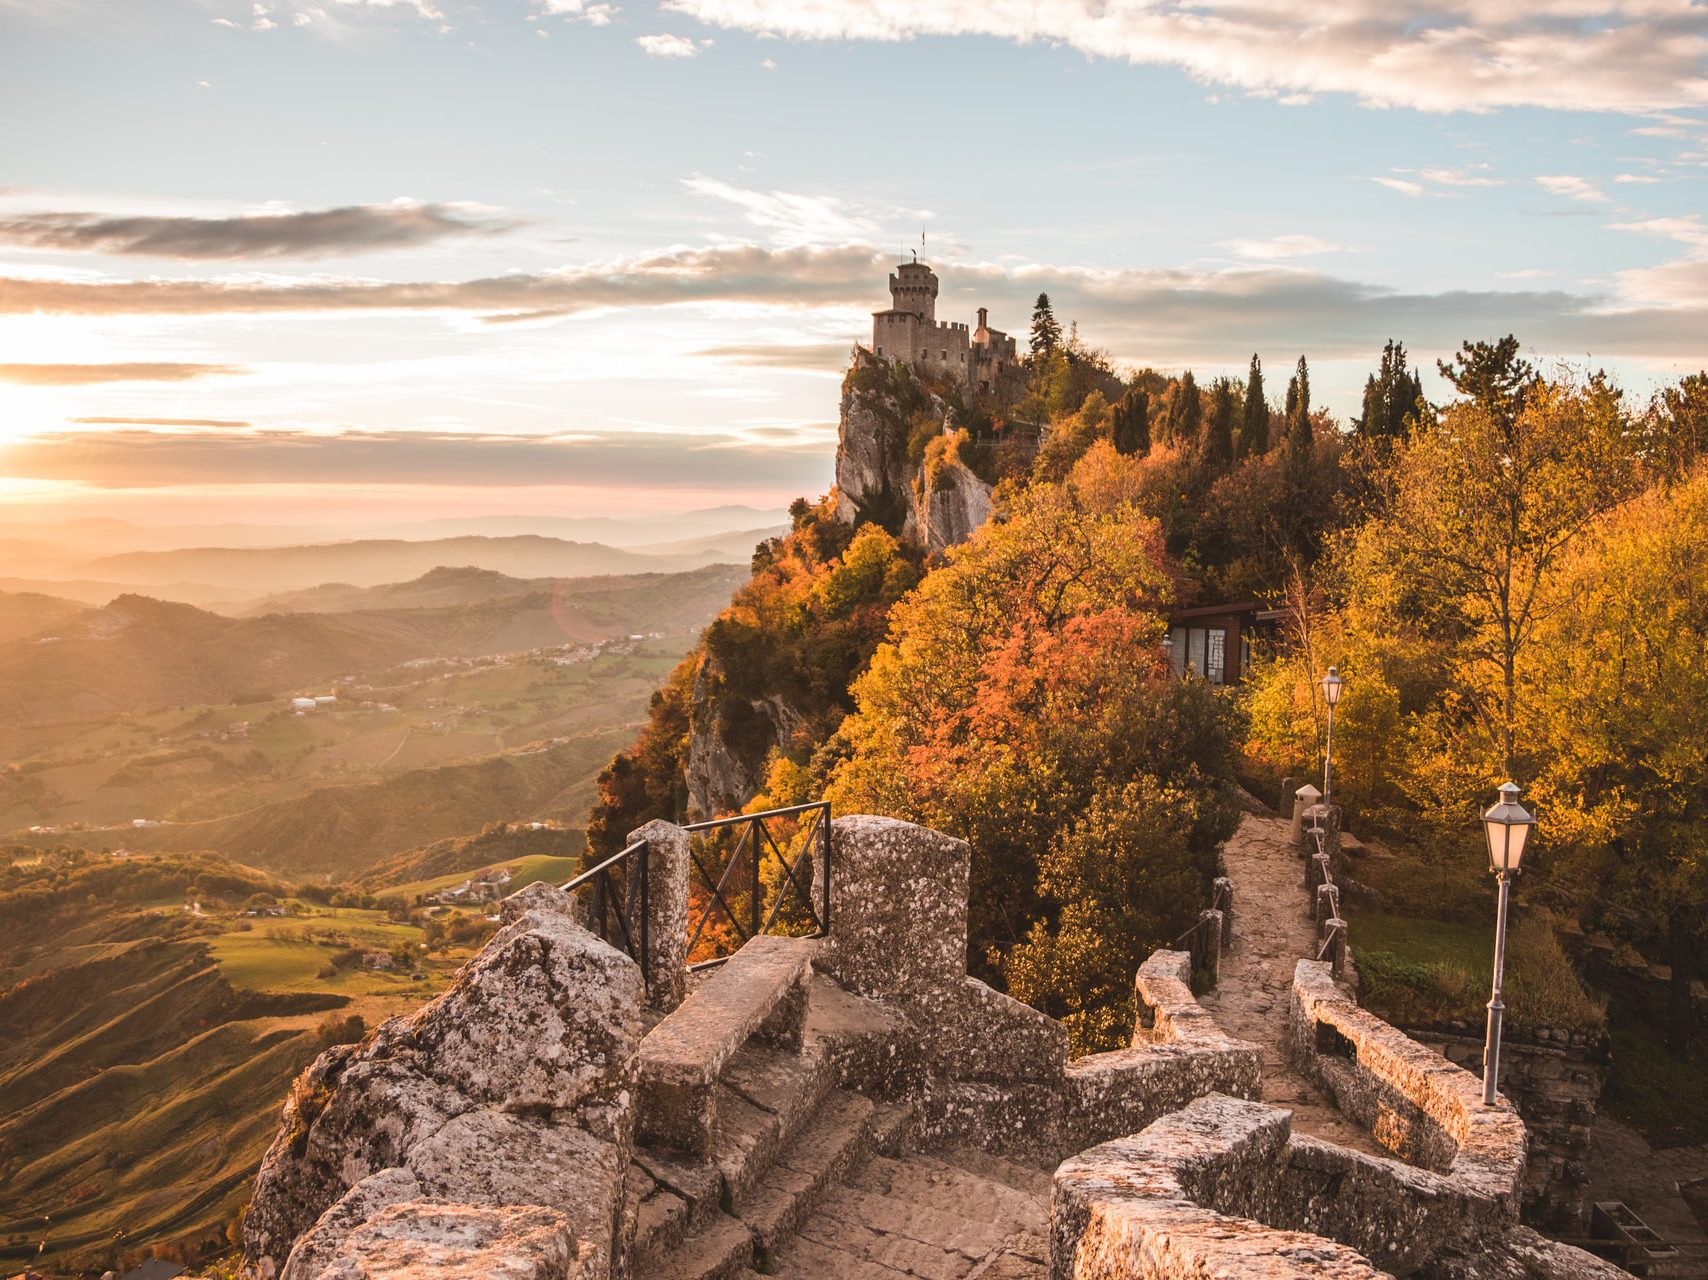 Incredible castles of San Marino - one of the smallest European countries